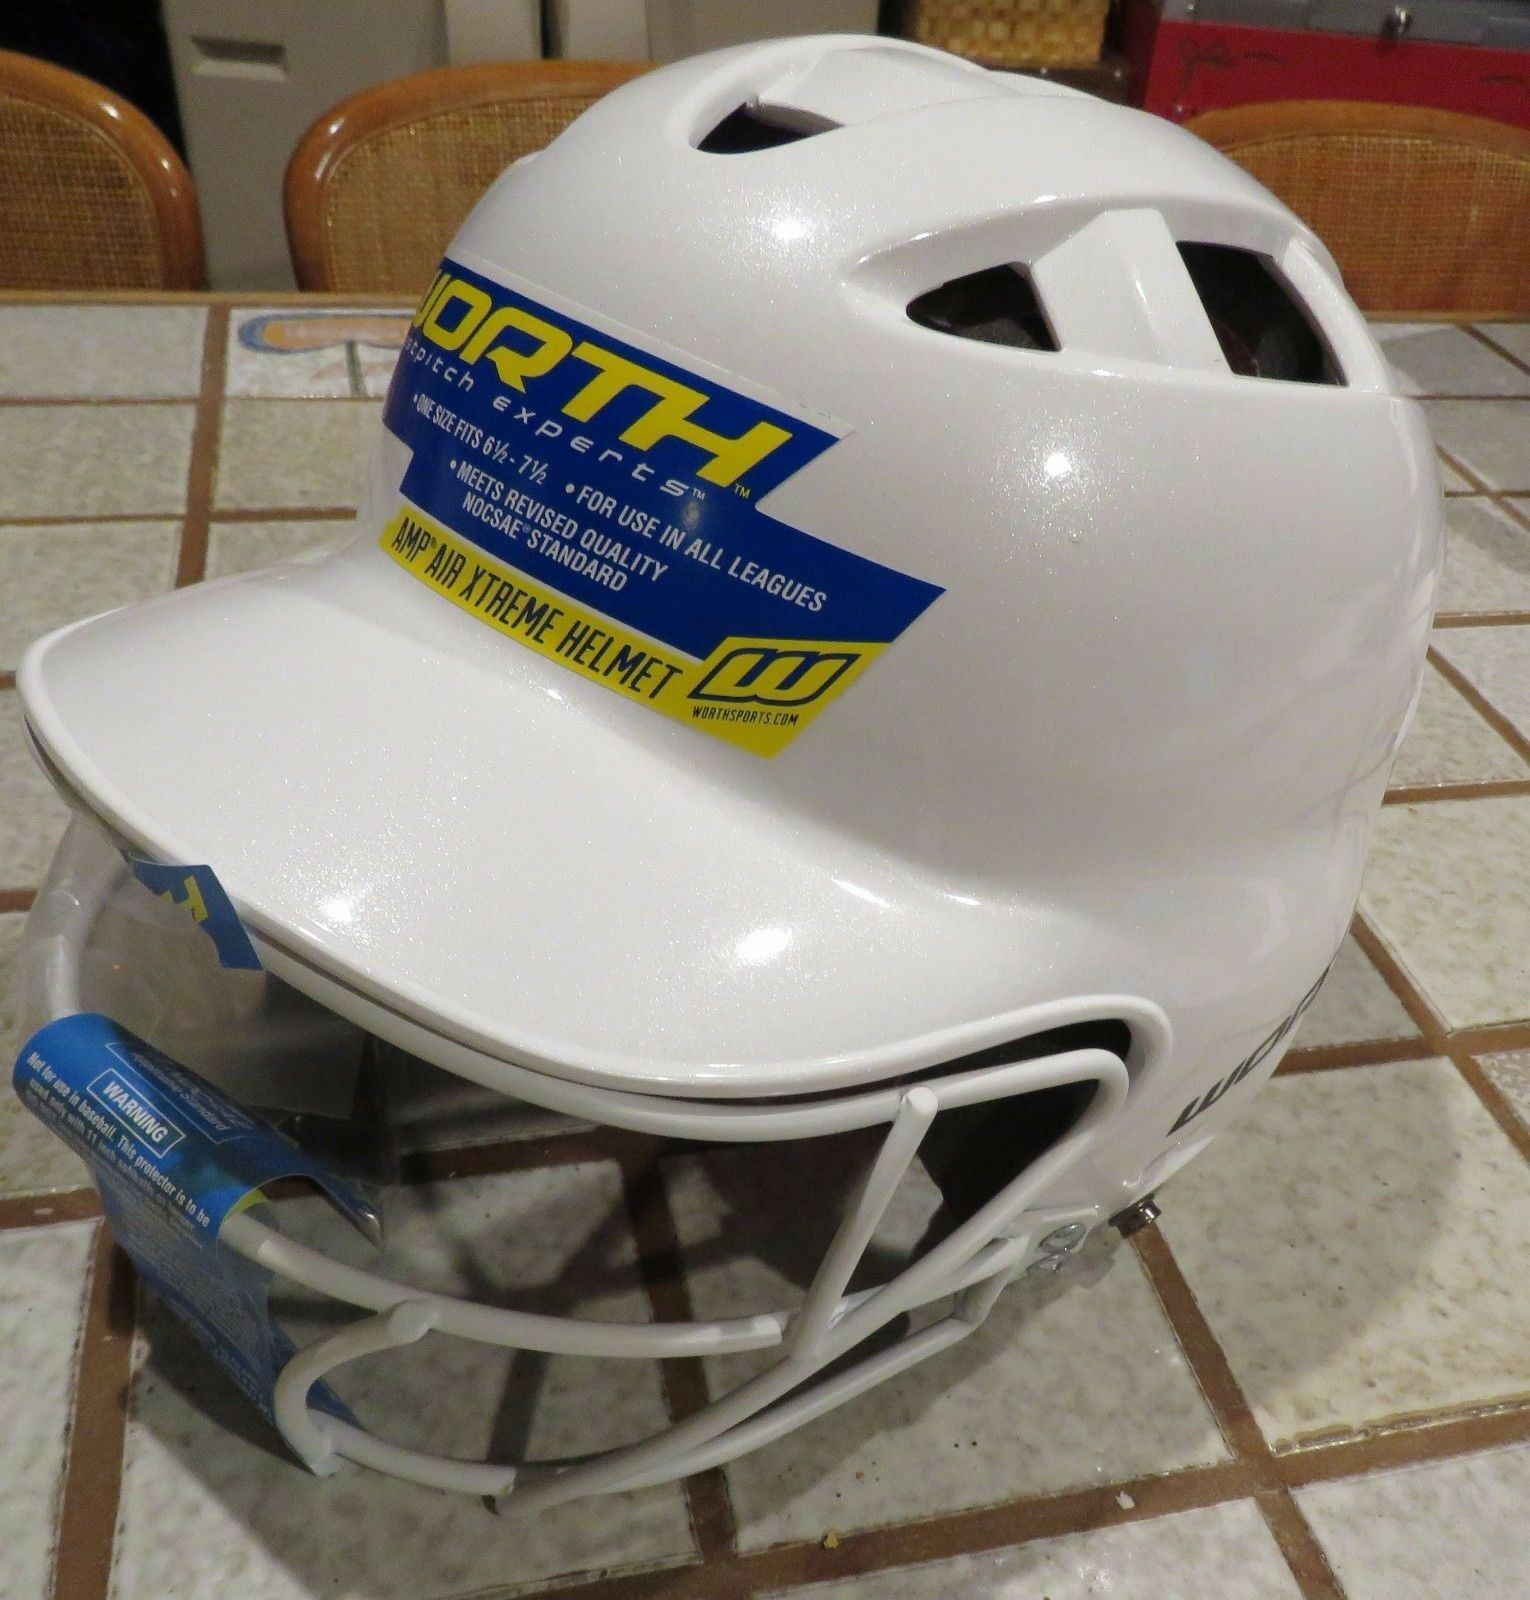 Worth Softball Helmet Fastpitch Amp Air Xtreme Ladies 6 1/2- 7 1/2 faceguard NEW